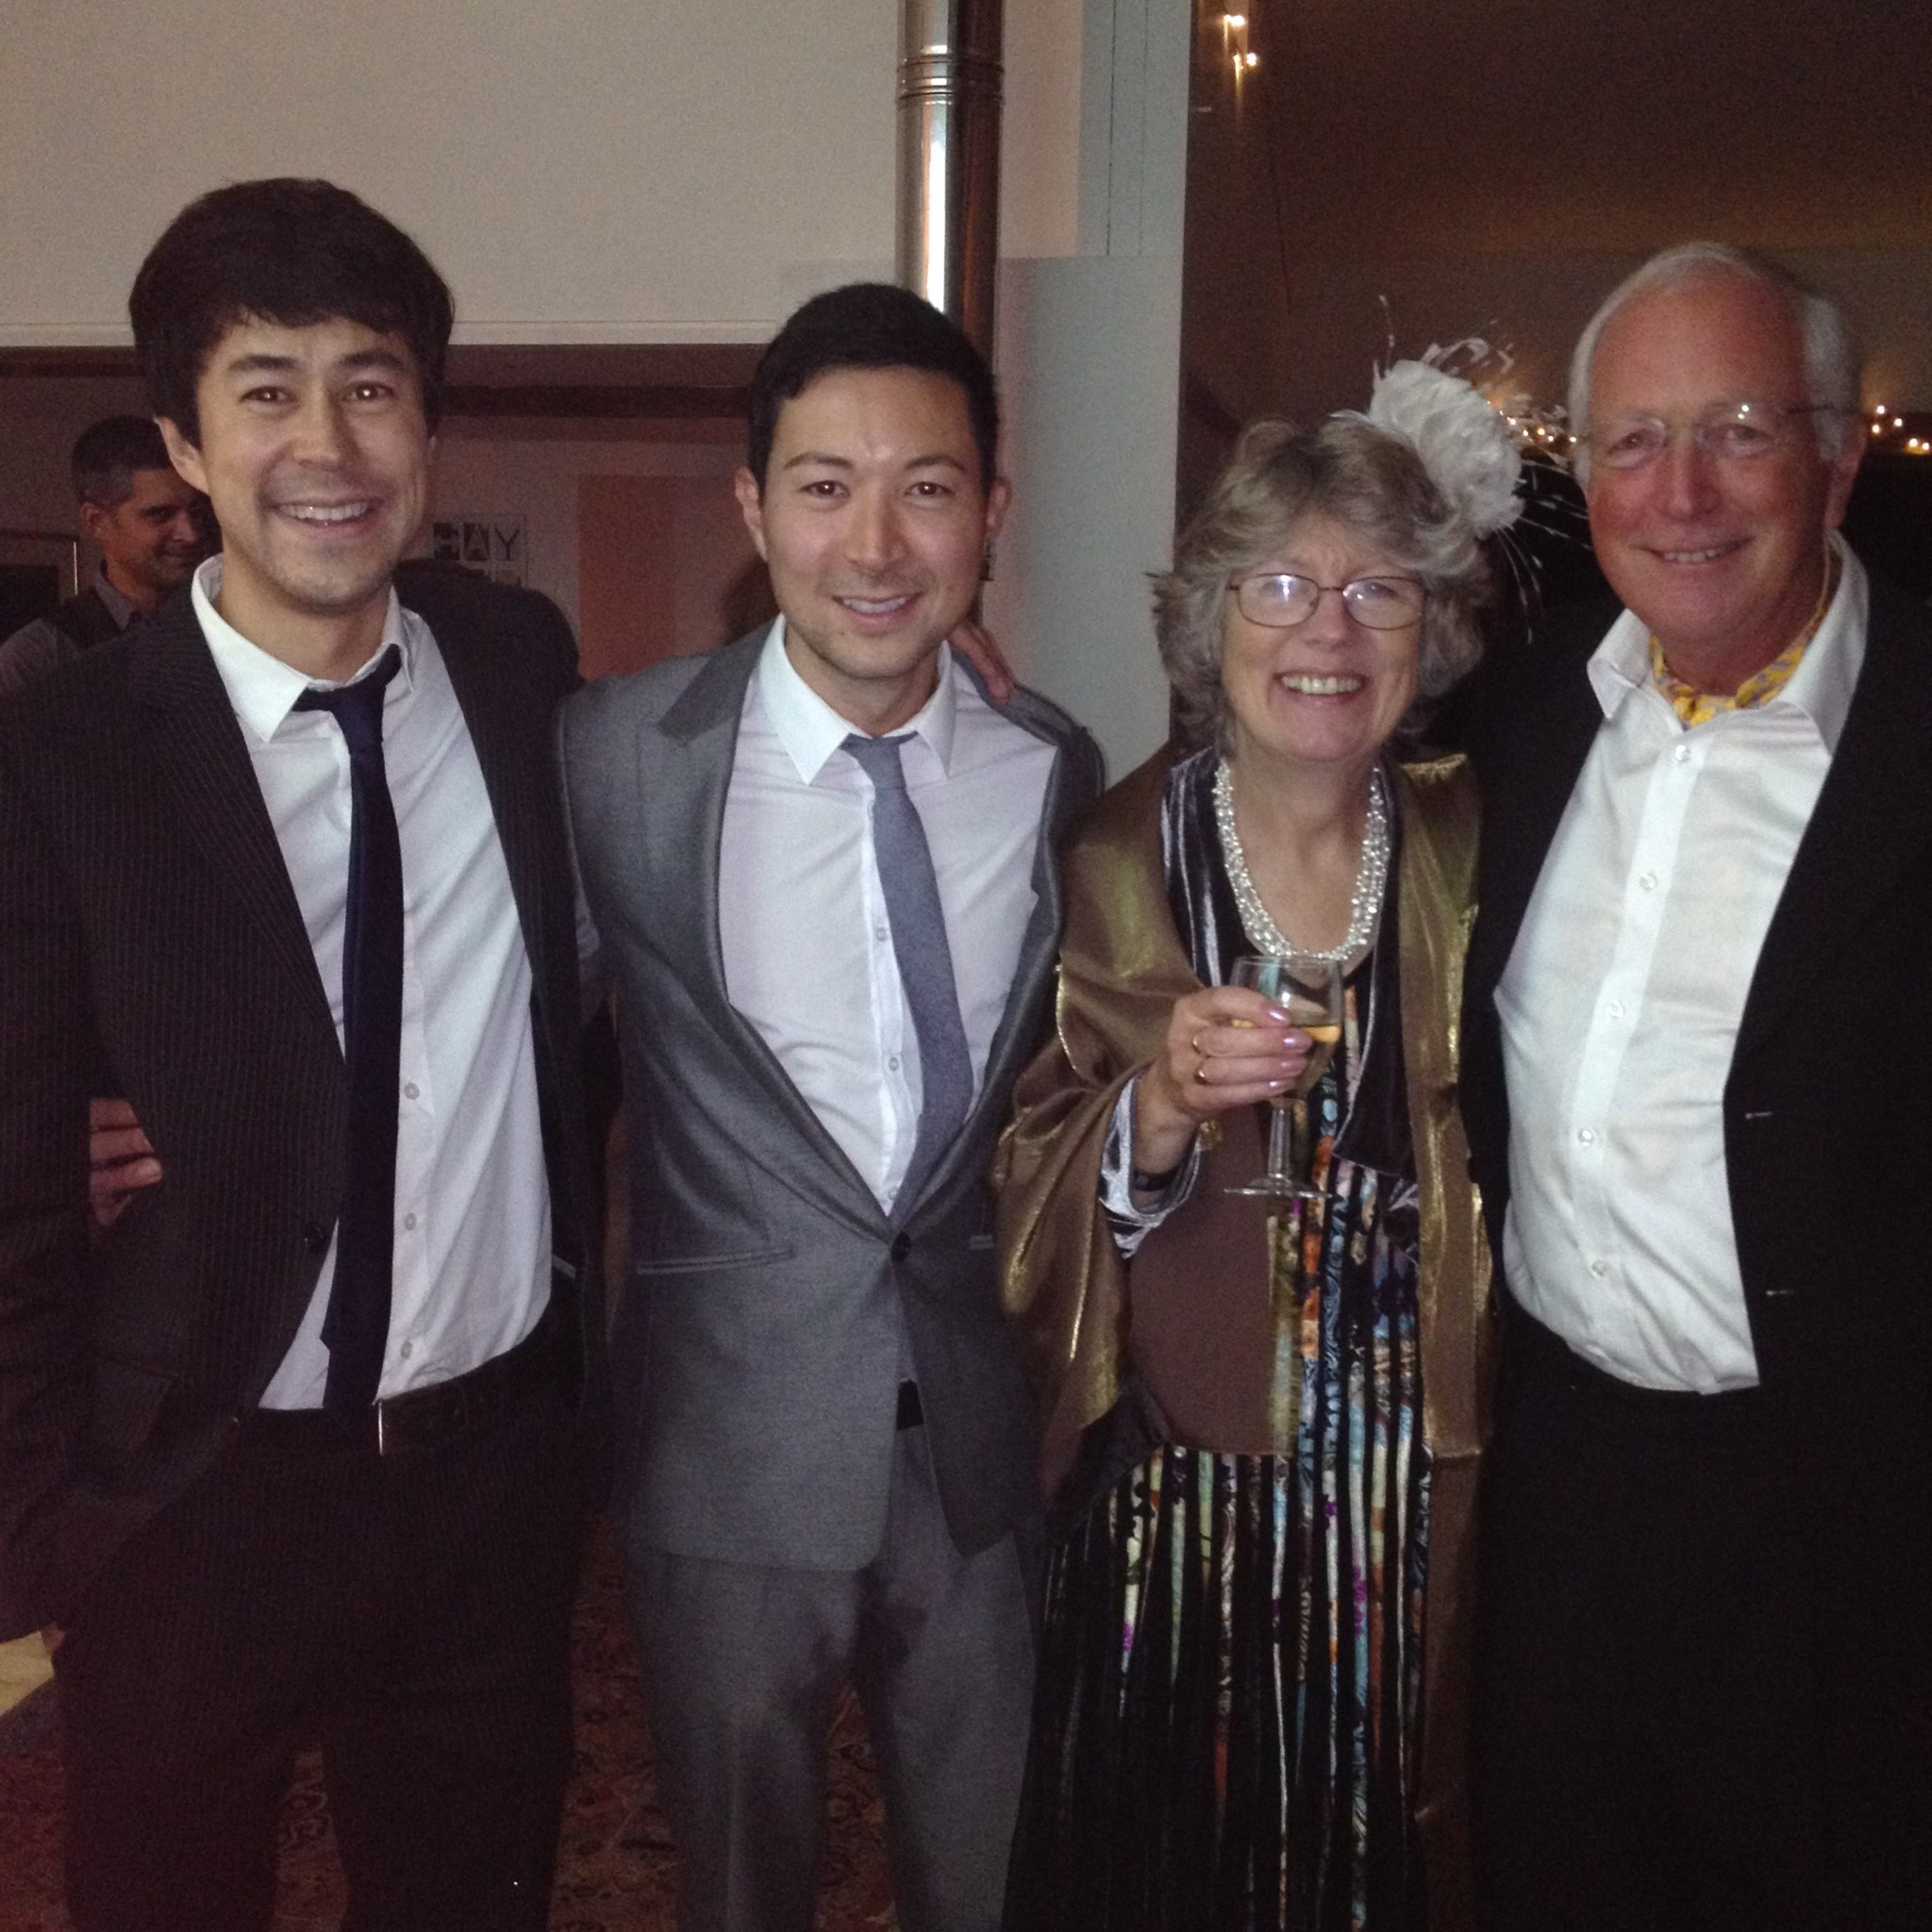 Steve, me, Brenda and Dad on at Ana and Johnny's wedding party - Cornwall Oct 13